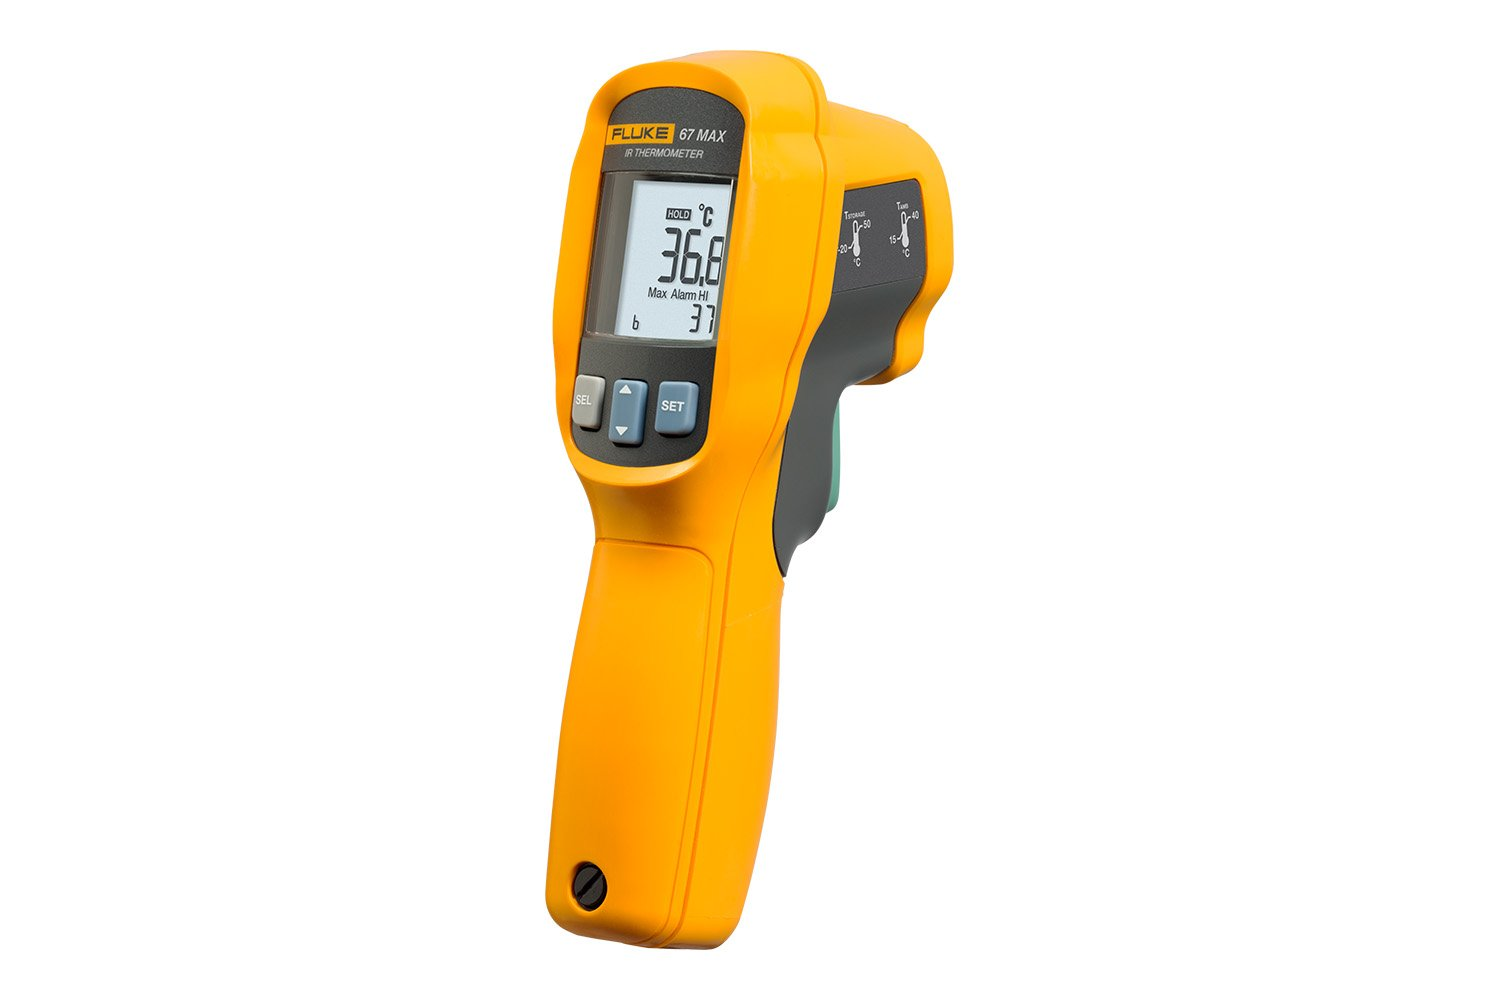 The Fluke 67 MAX Clinical Infrared Thermometer